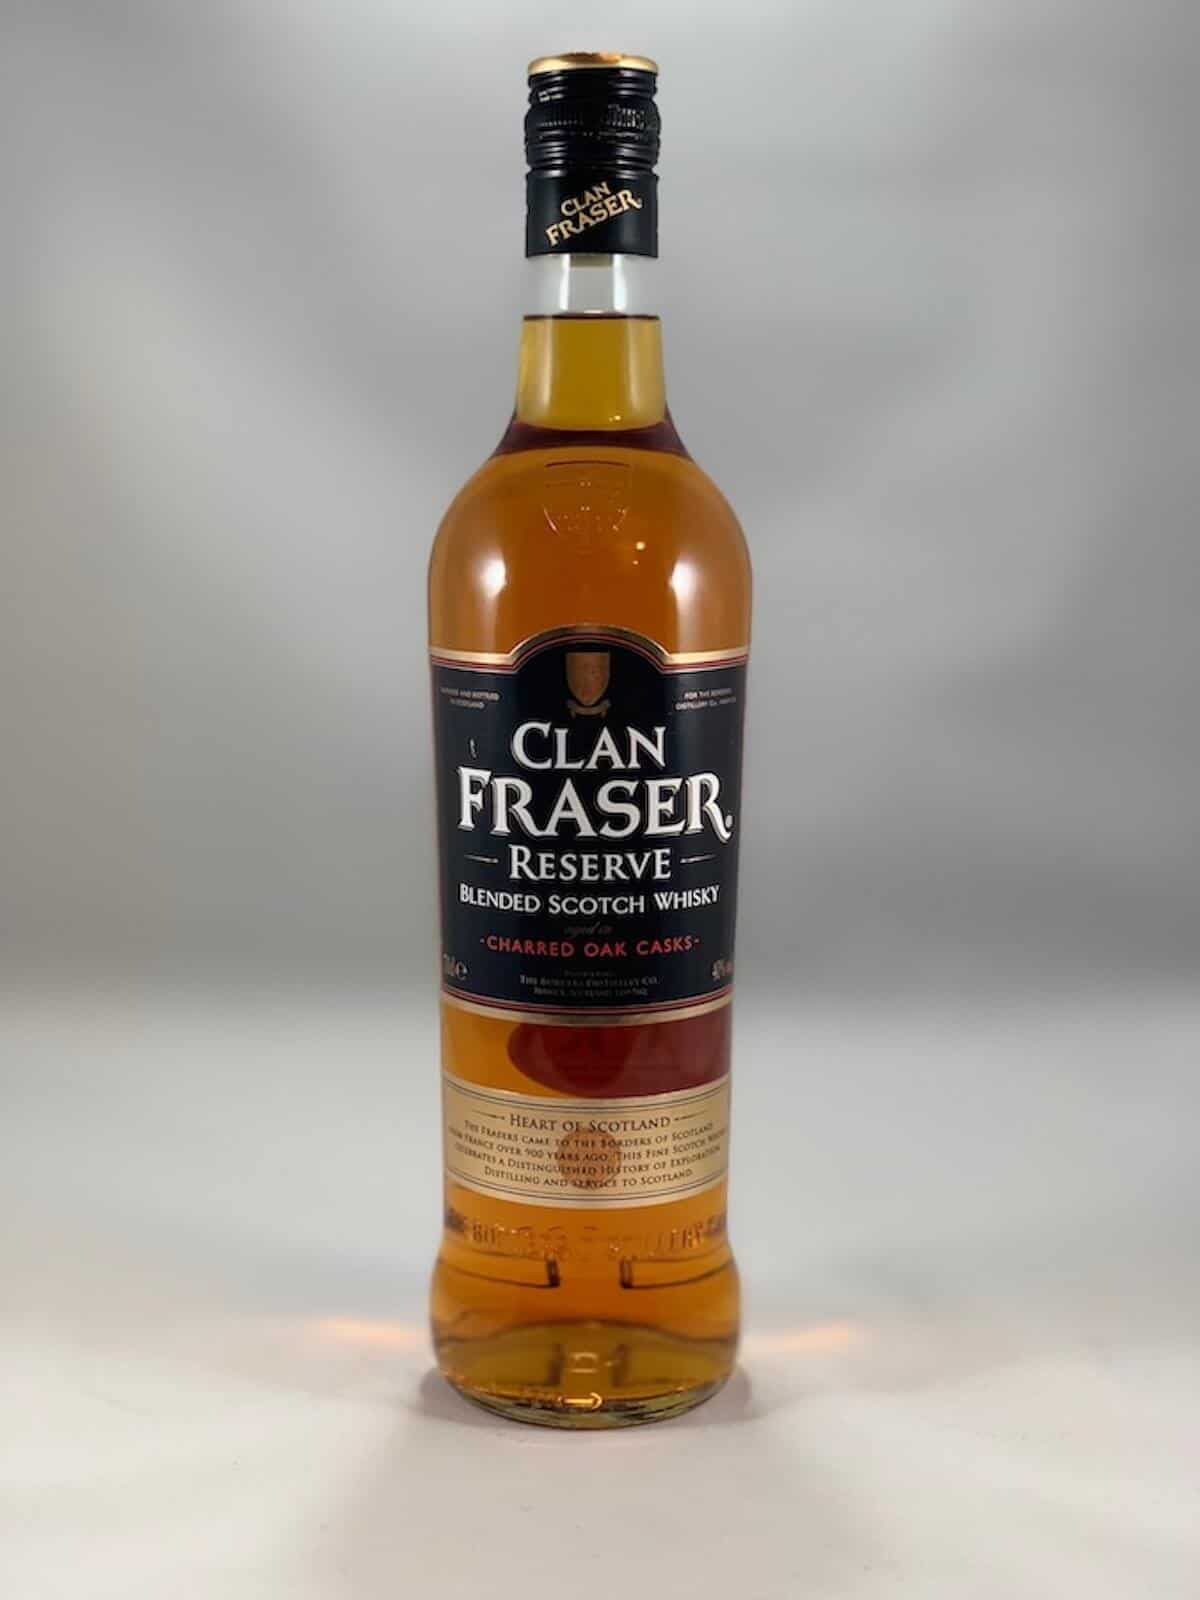 Clan Fraser Reserve bottle